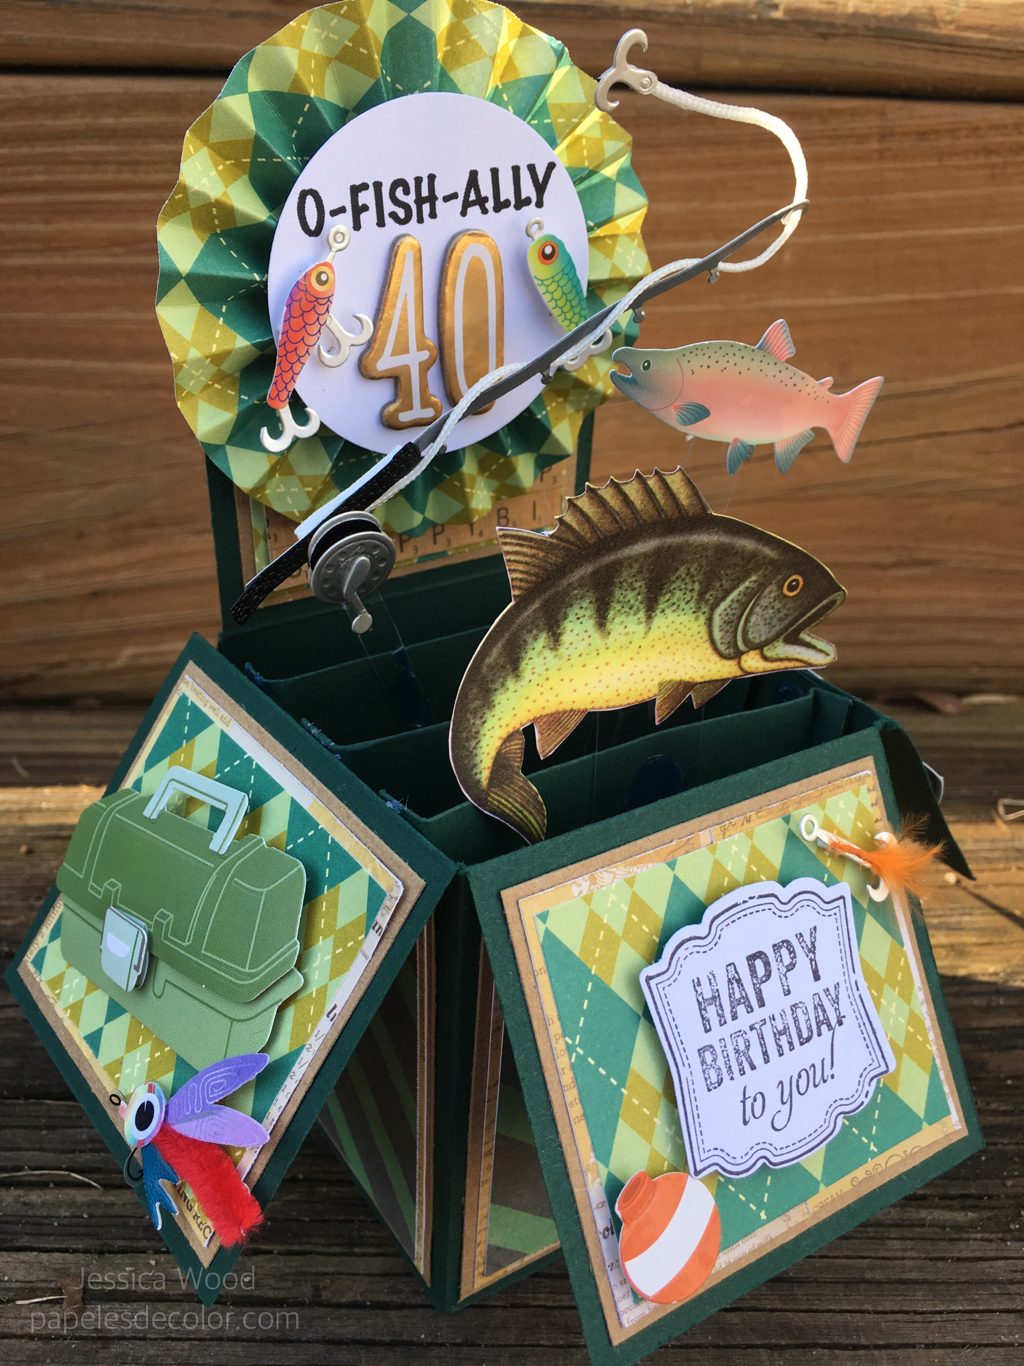 Fishing 40th Birthday Card In A Box For Men 40th Birthday Cards Birthday Cards For Men Fishing Birthday Cards